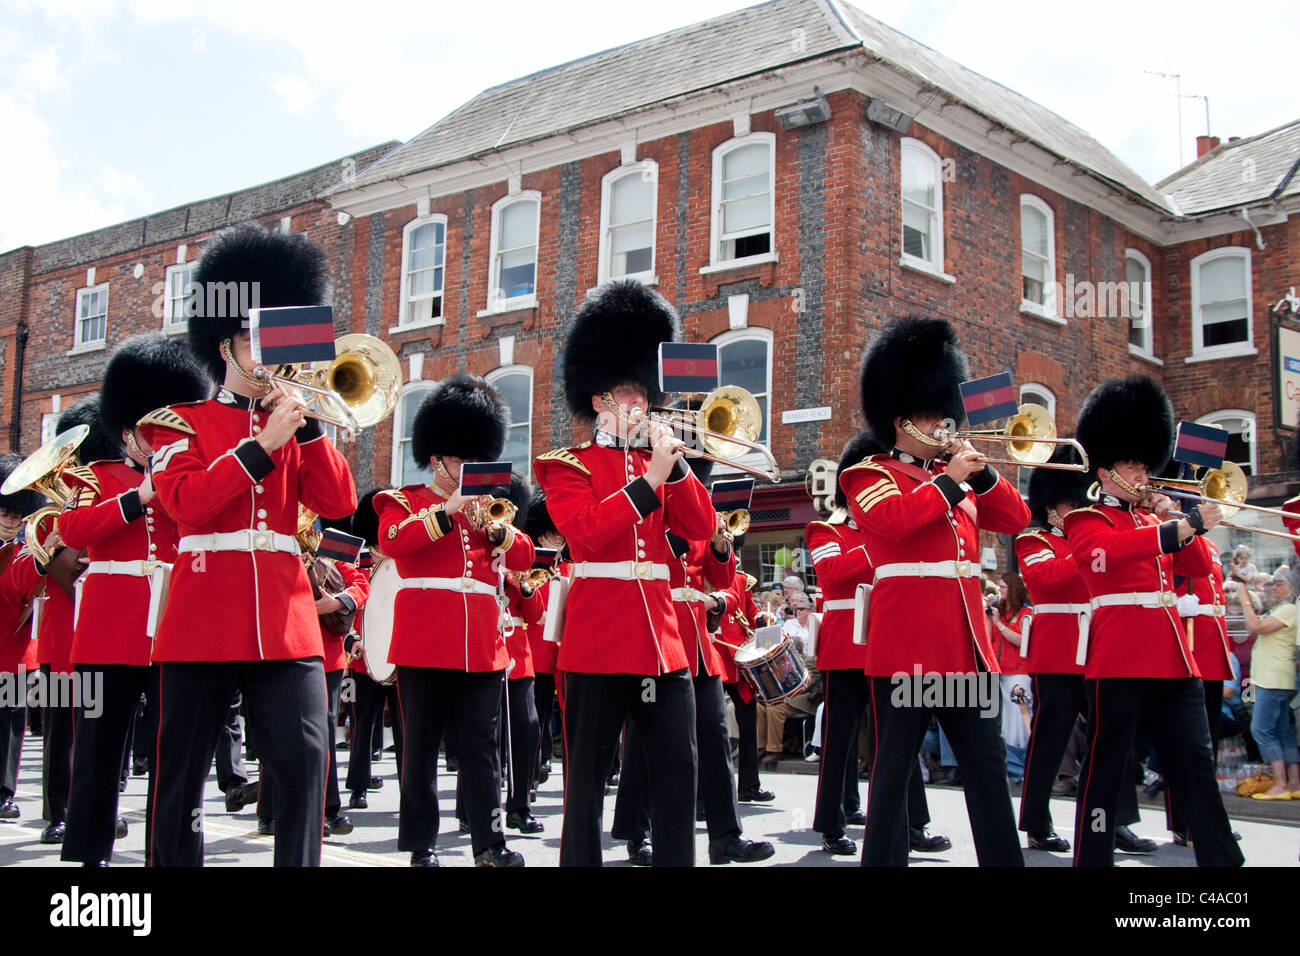 the 1st Battalion Scots Guards parade through Wantage, Oxfordshire, UK in full ceremonial dress. - Stock Image